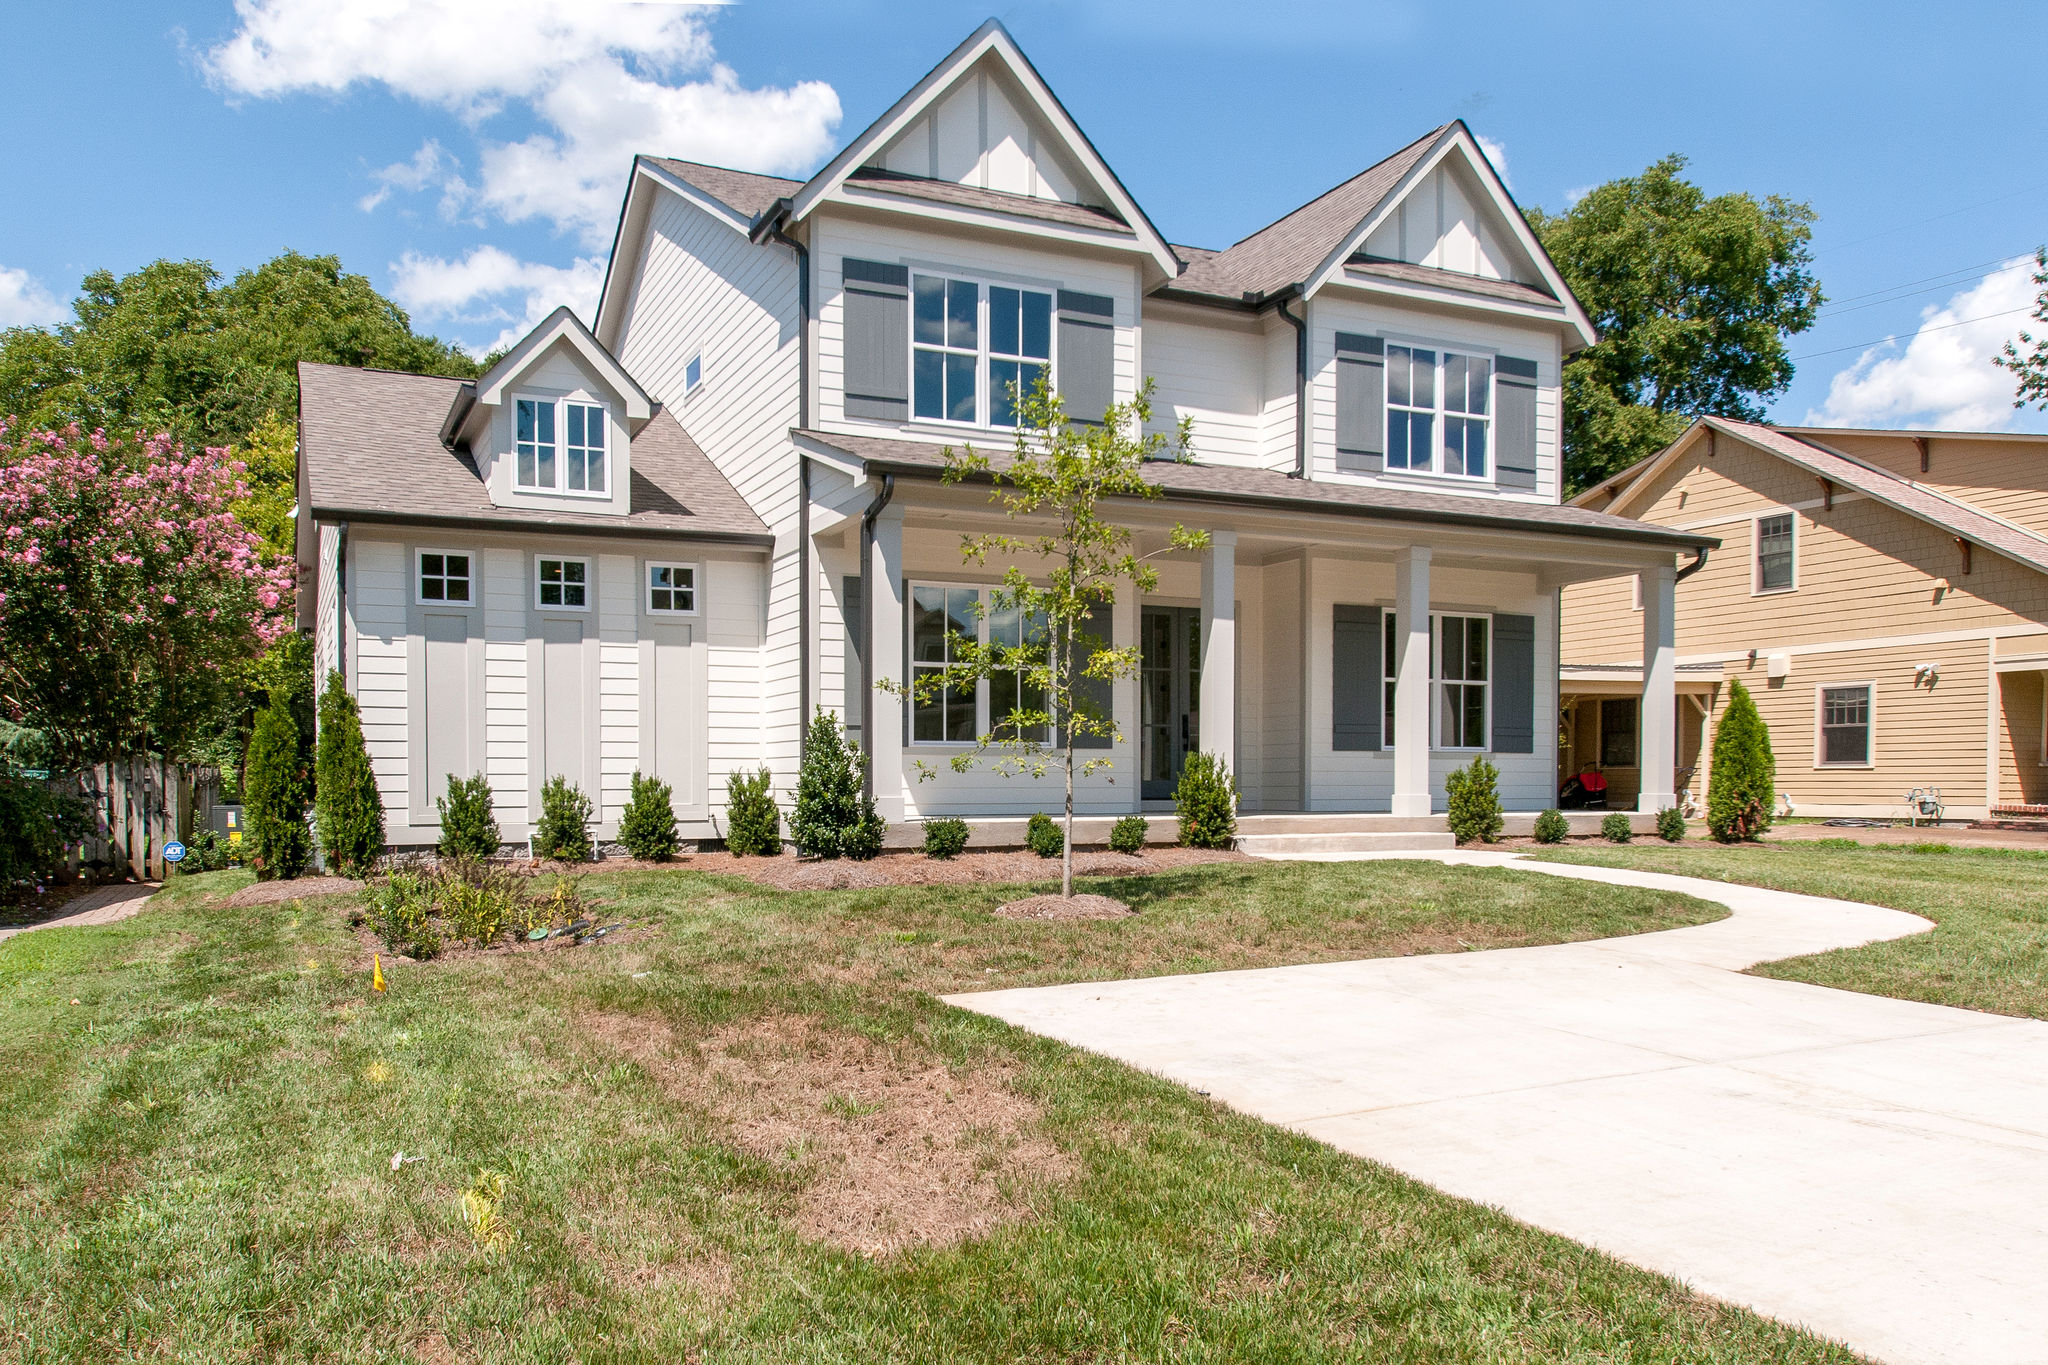 New Homes with landscape and walkway in Franklin, Brentwood, and Thompson Station TN with Custom Home Design